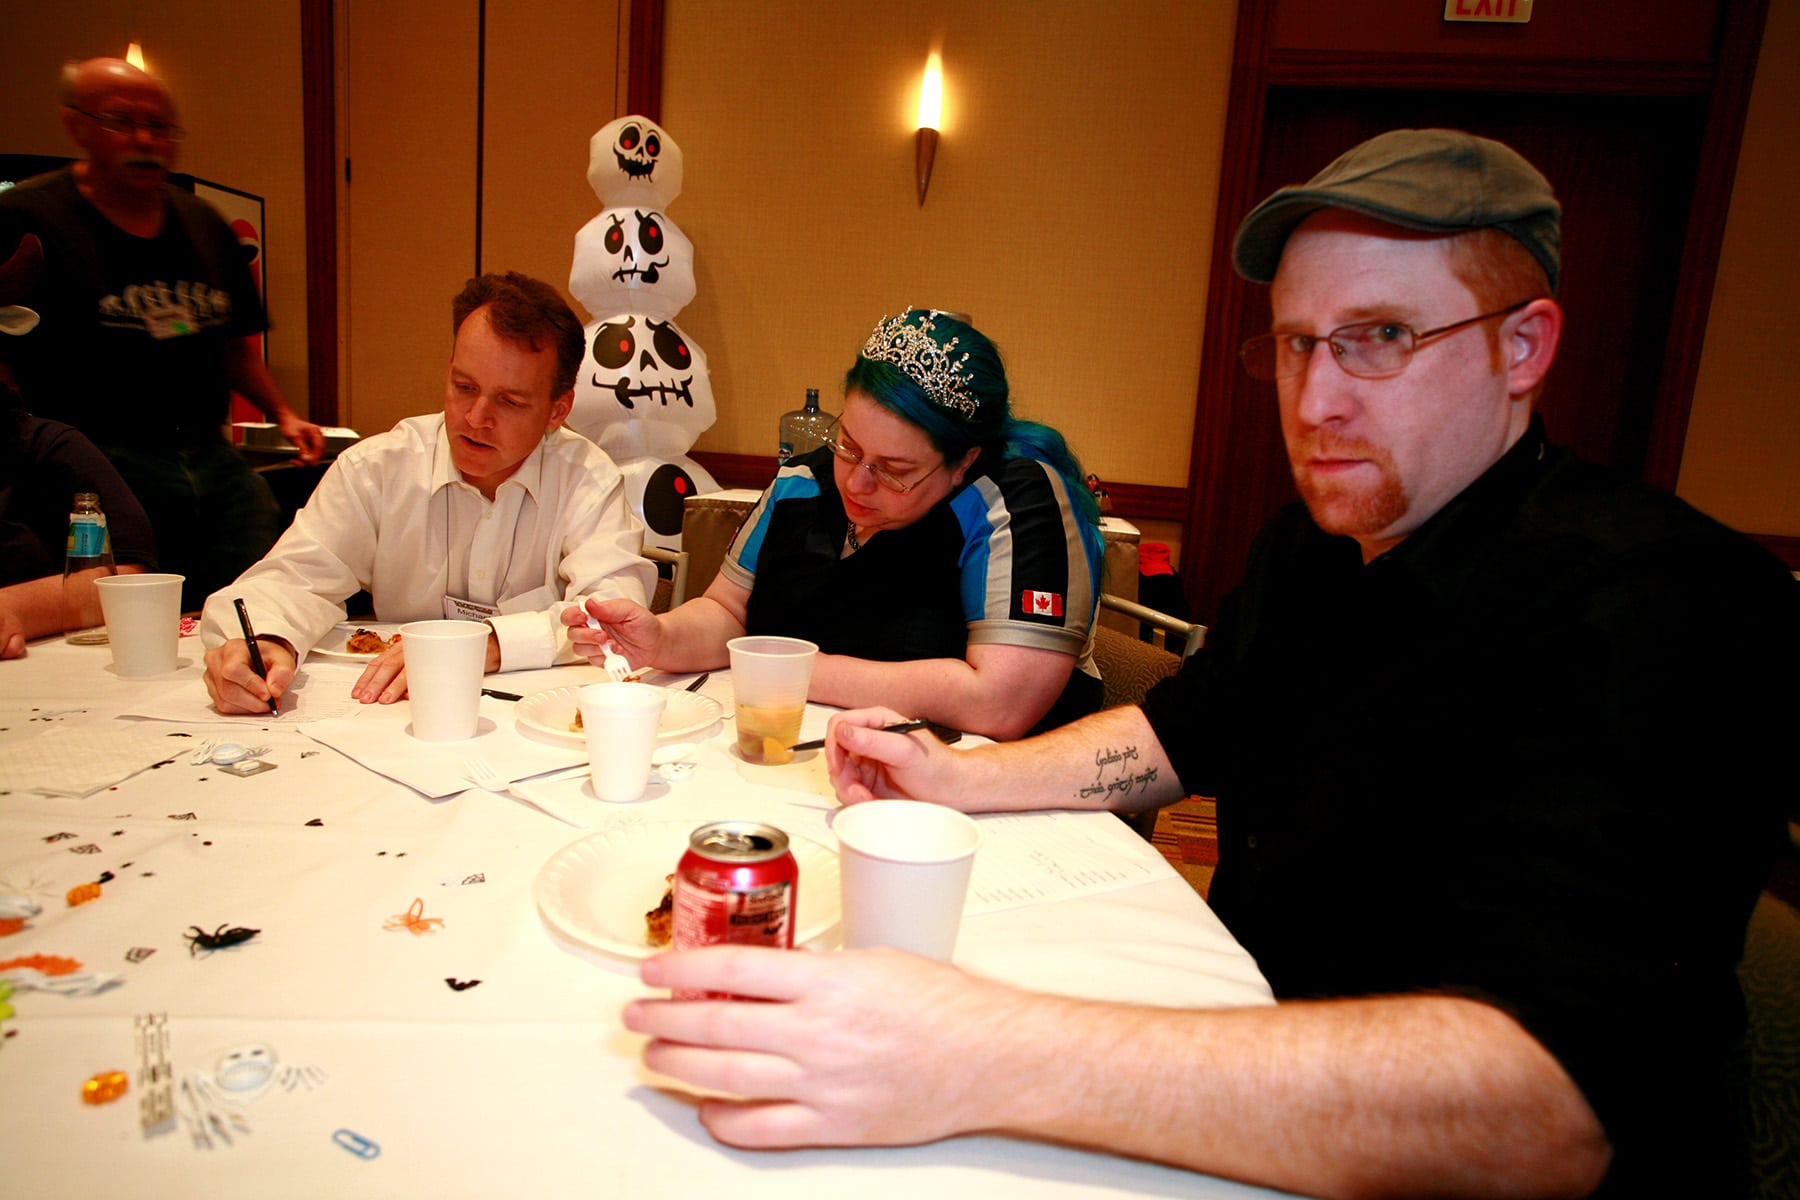 3 nerds sitting at a table.